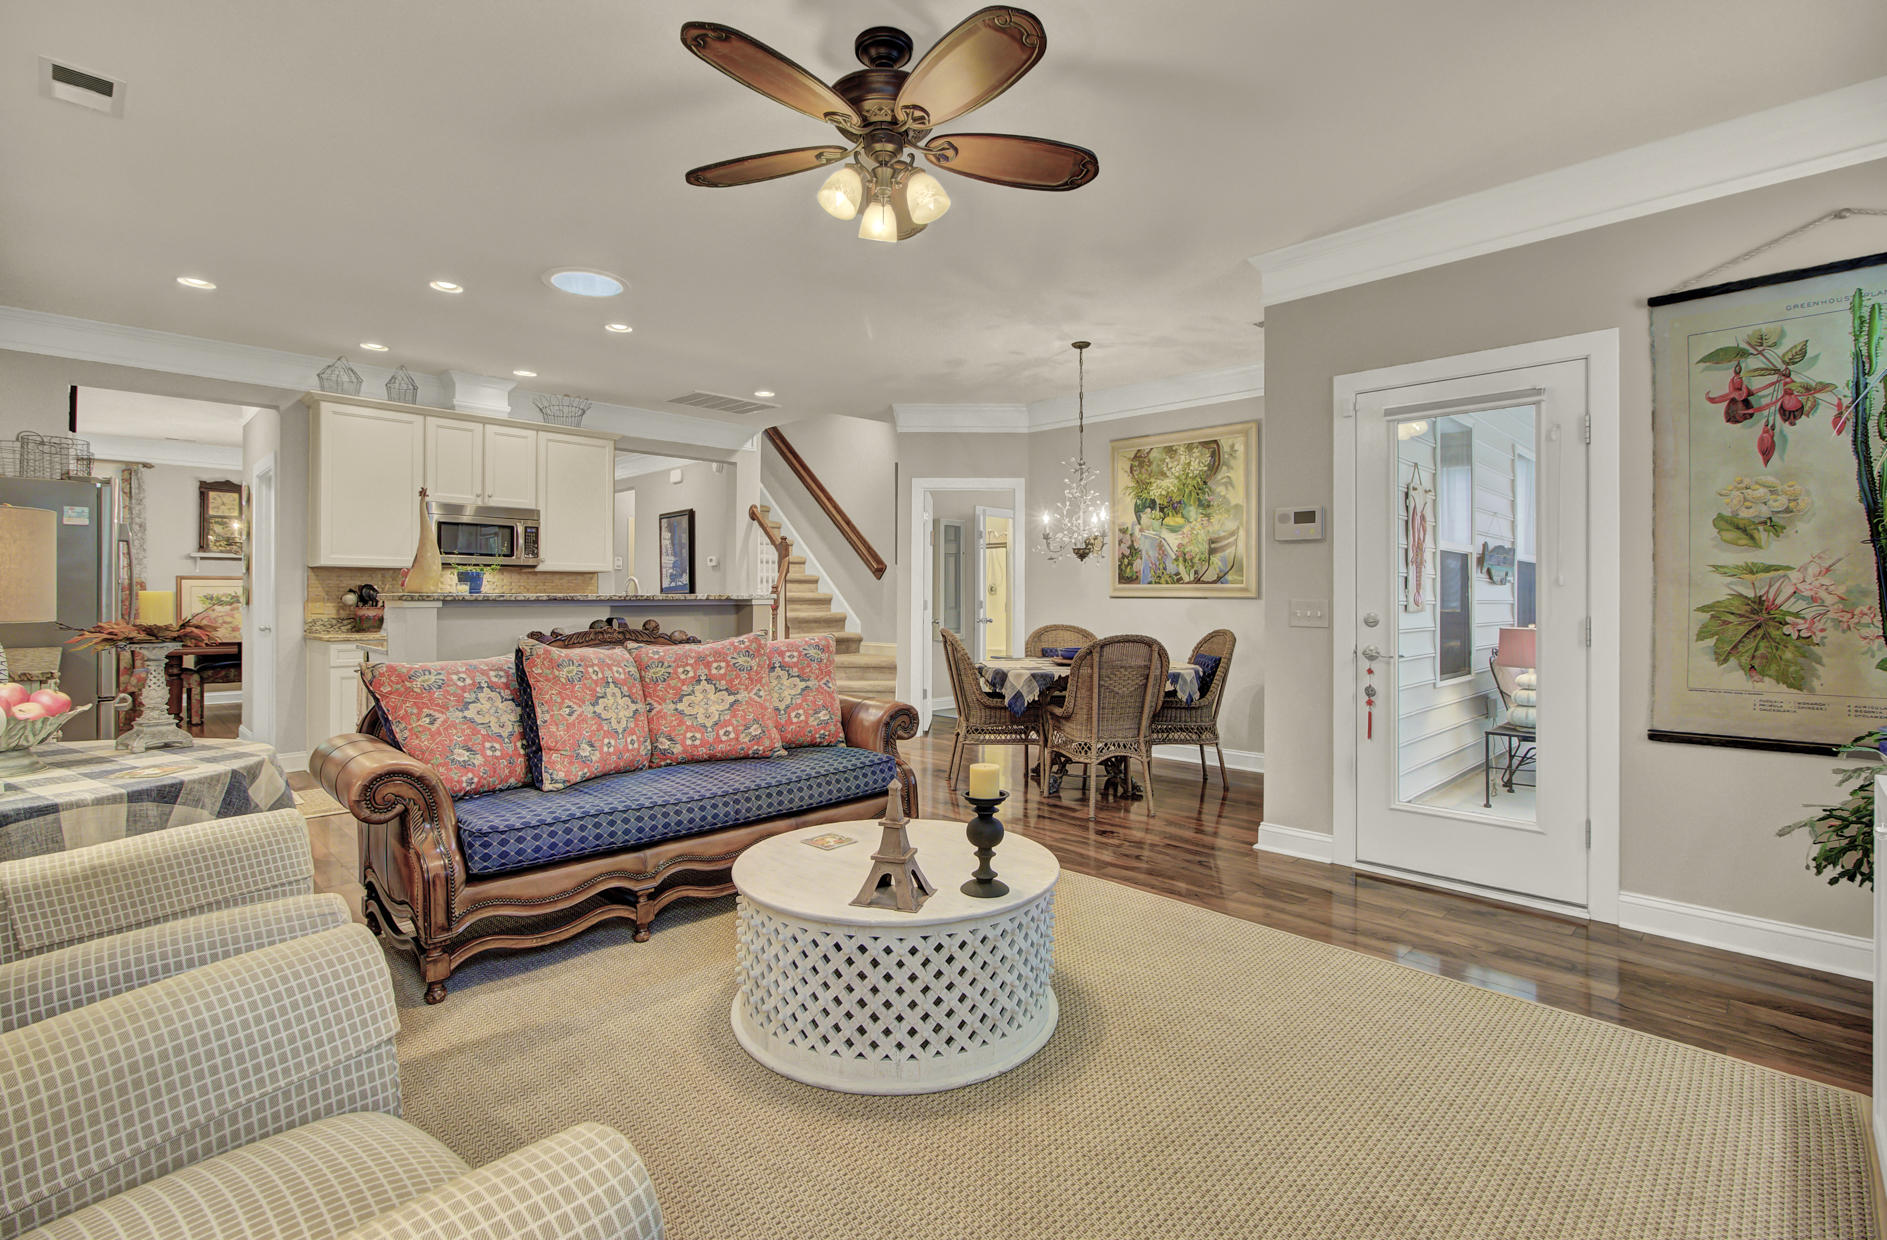 Boltons Landing Homes For Sale - 3034 Scuba, Charleston, SC - 25